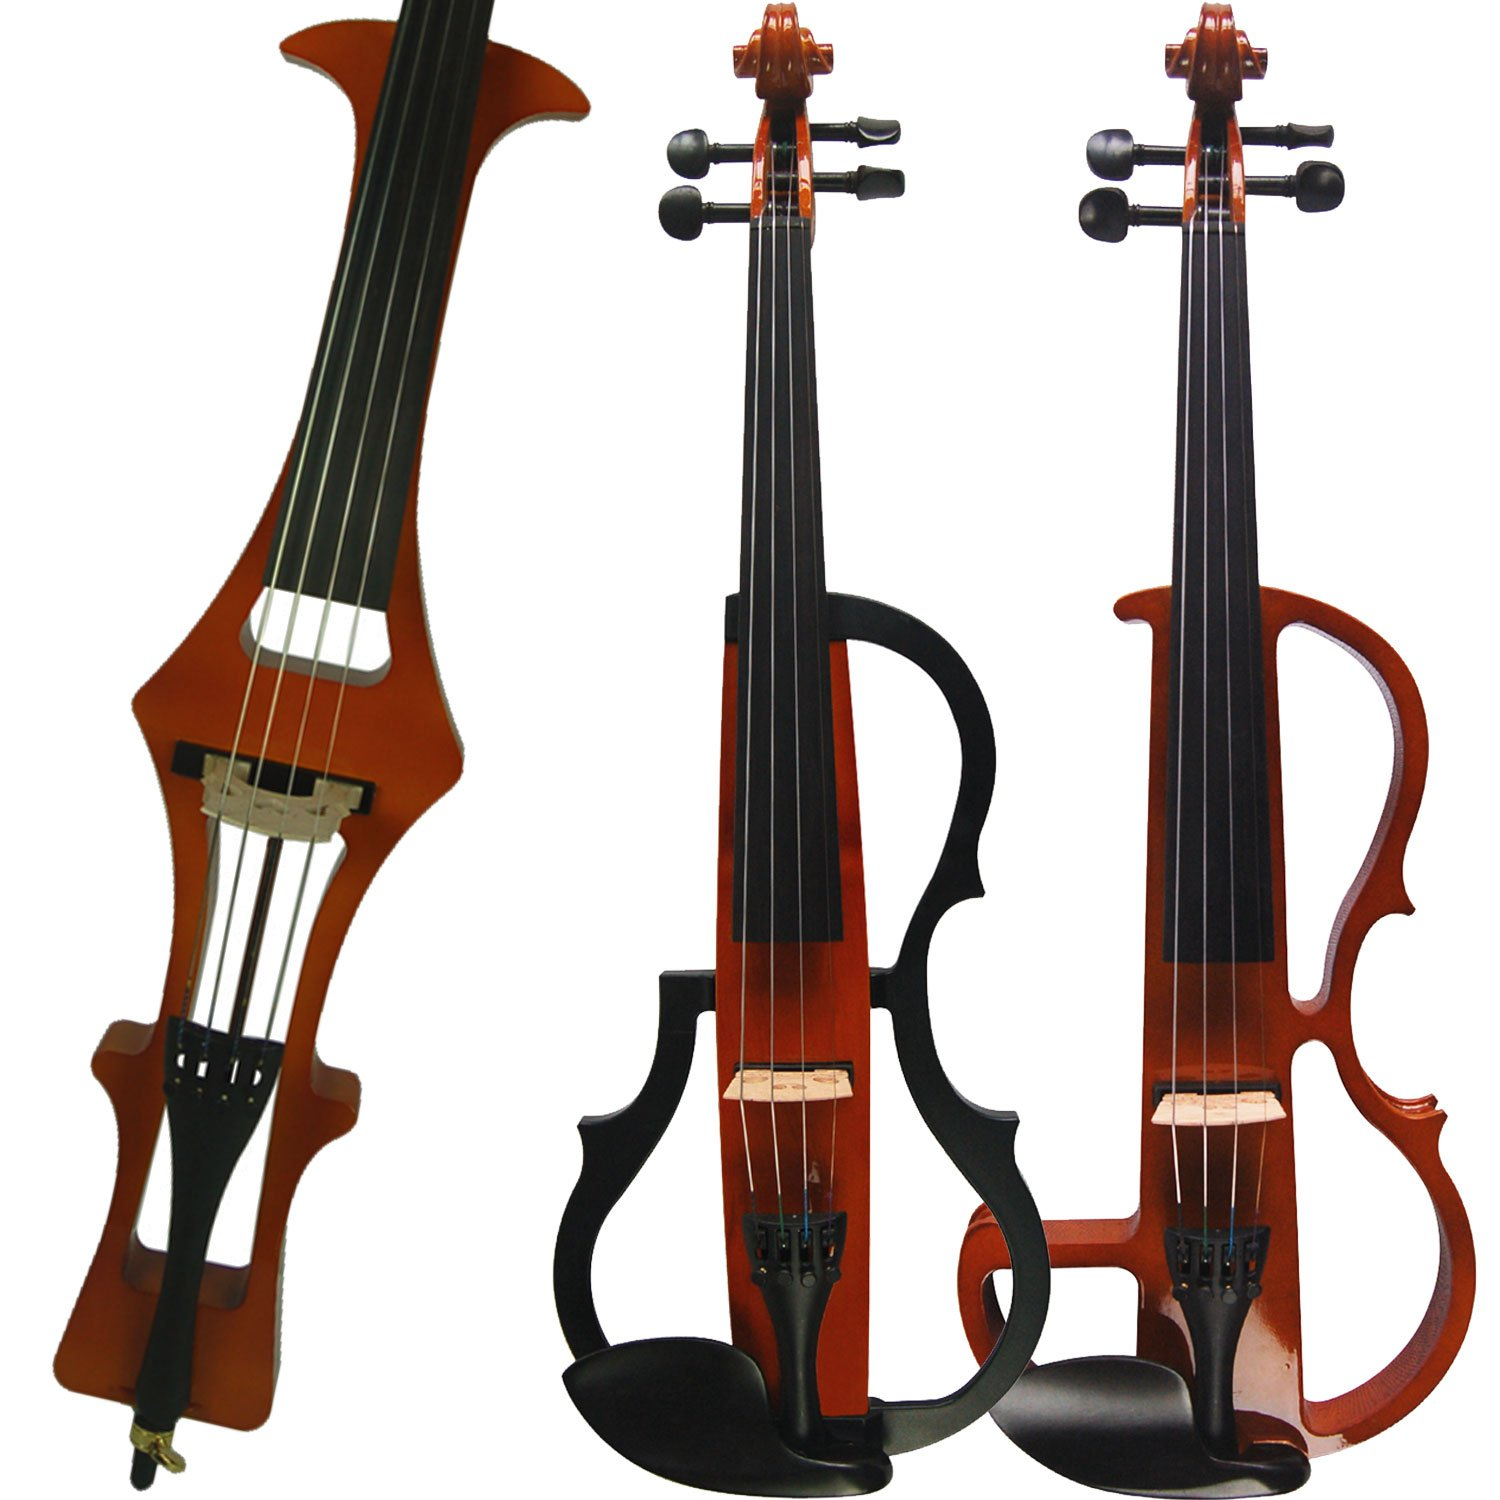 Aliyes Handmade Professional Solid Wood Electric Cello 4/4 Full Size Silent Electric Cello-1804 by Aliyes